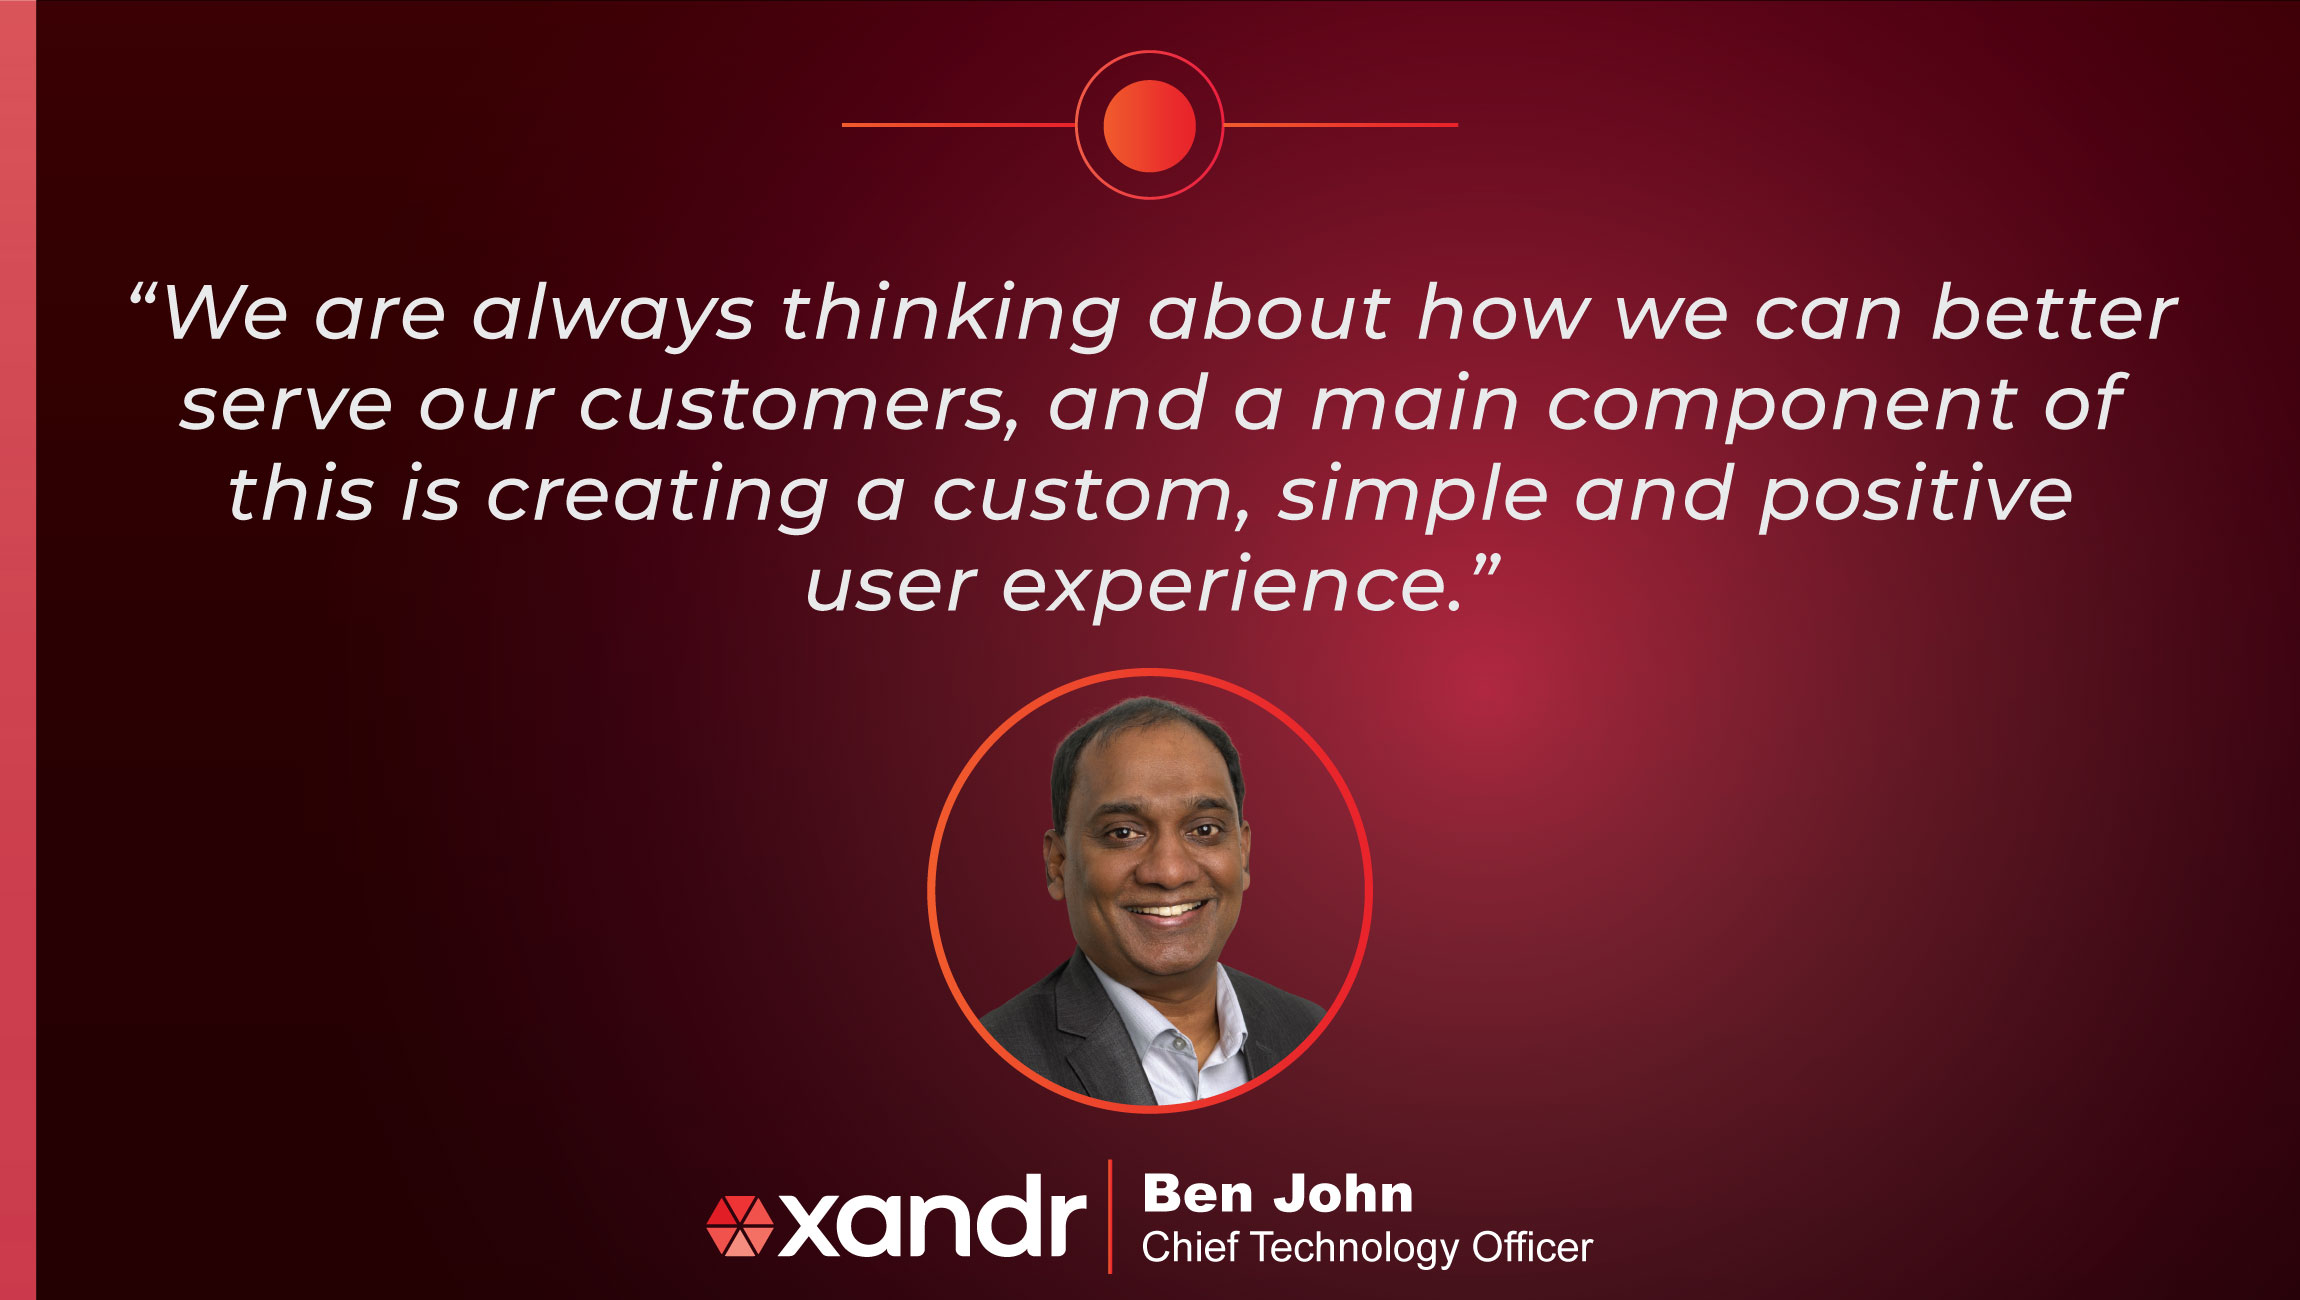 TechBytes with Ben John, Chief Technology Officer at Xandr